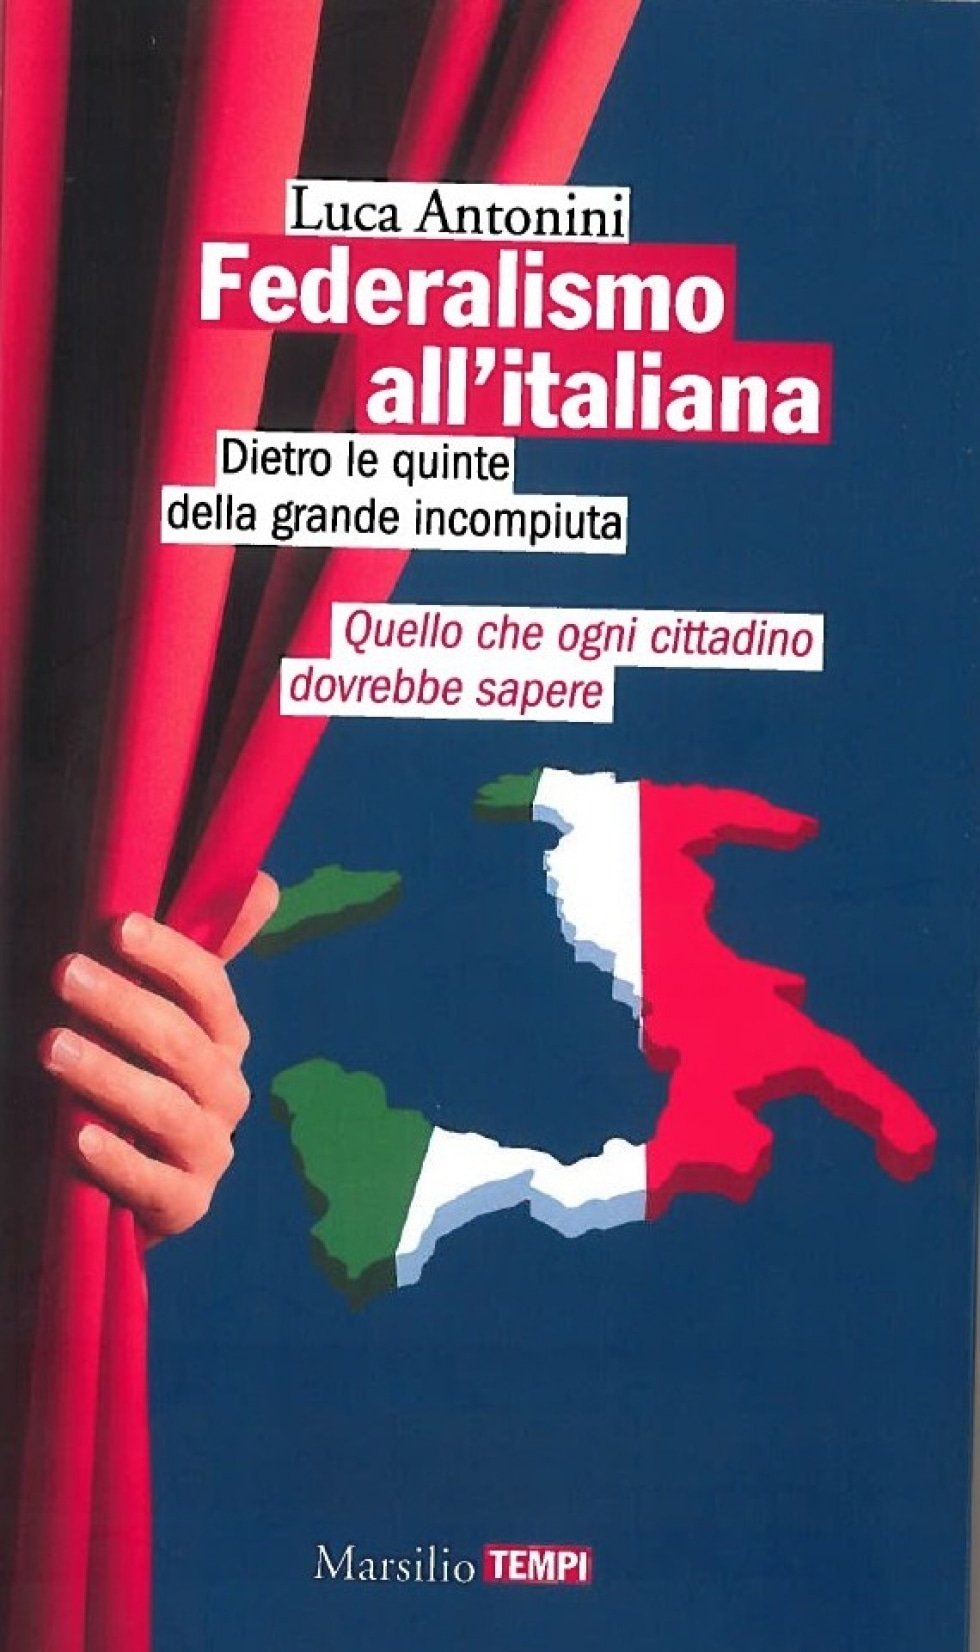 IFEL Libri in comune – Federalismo all'italiana